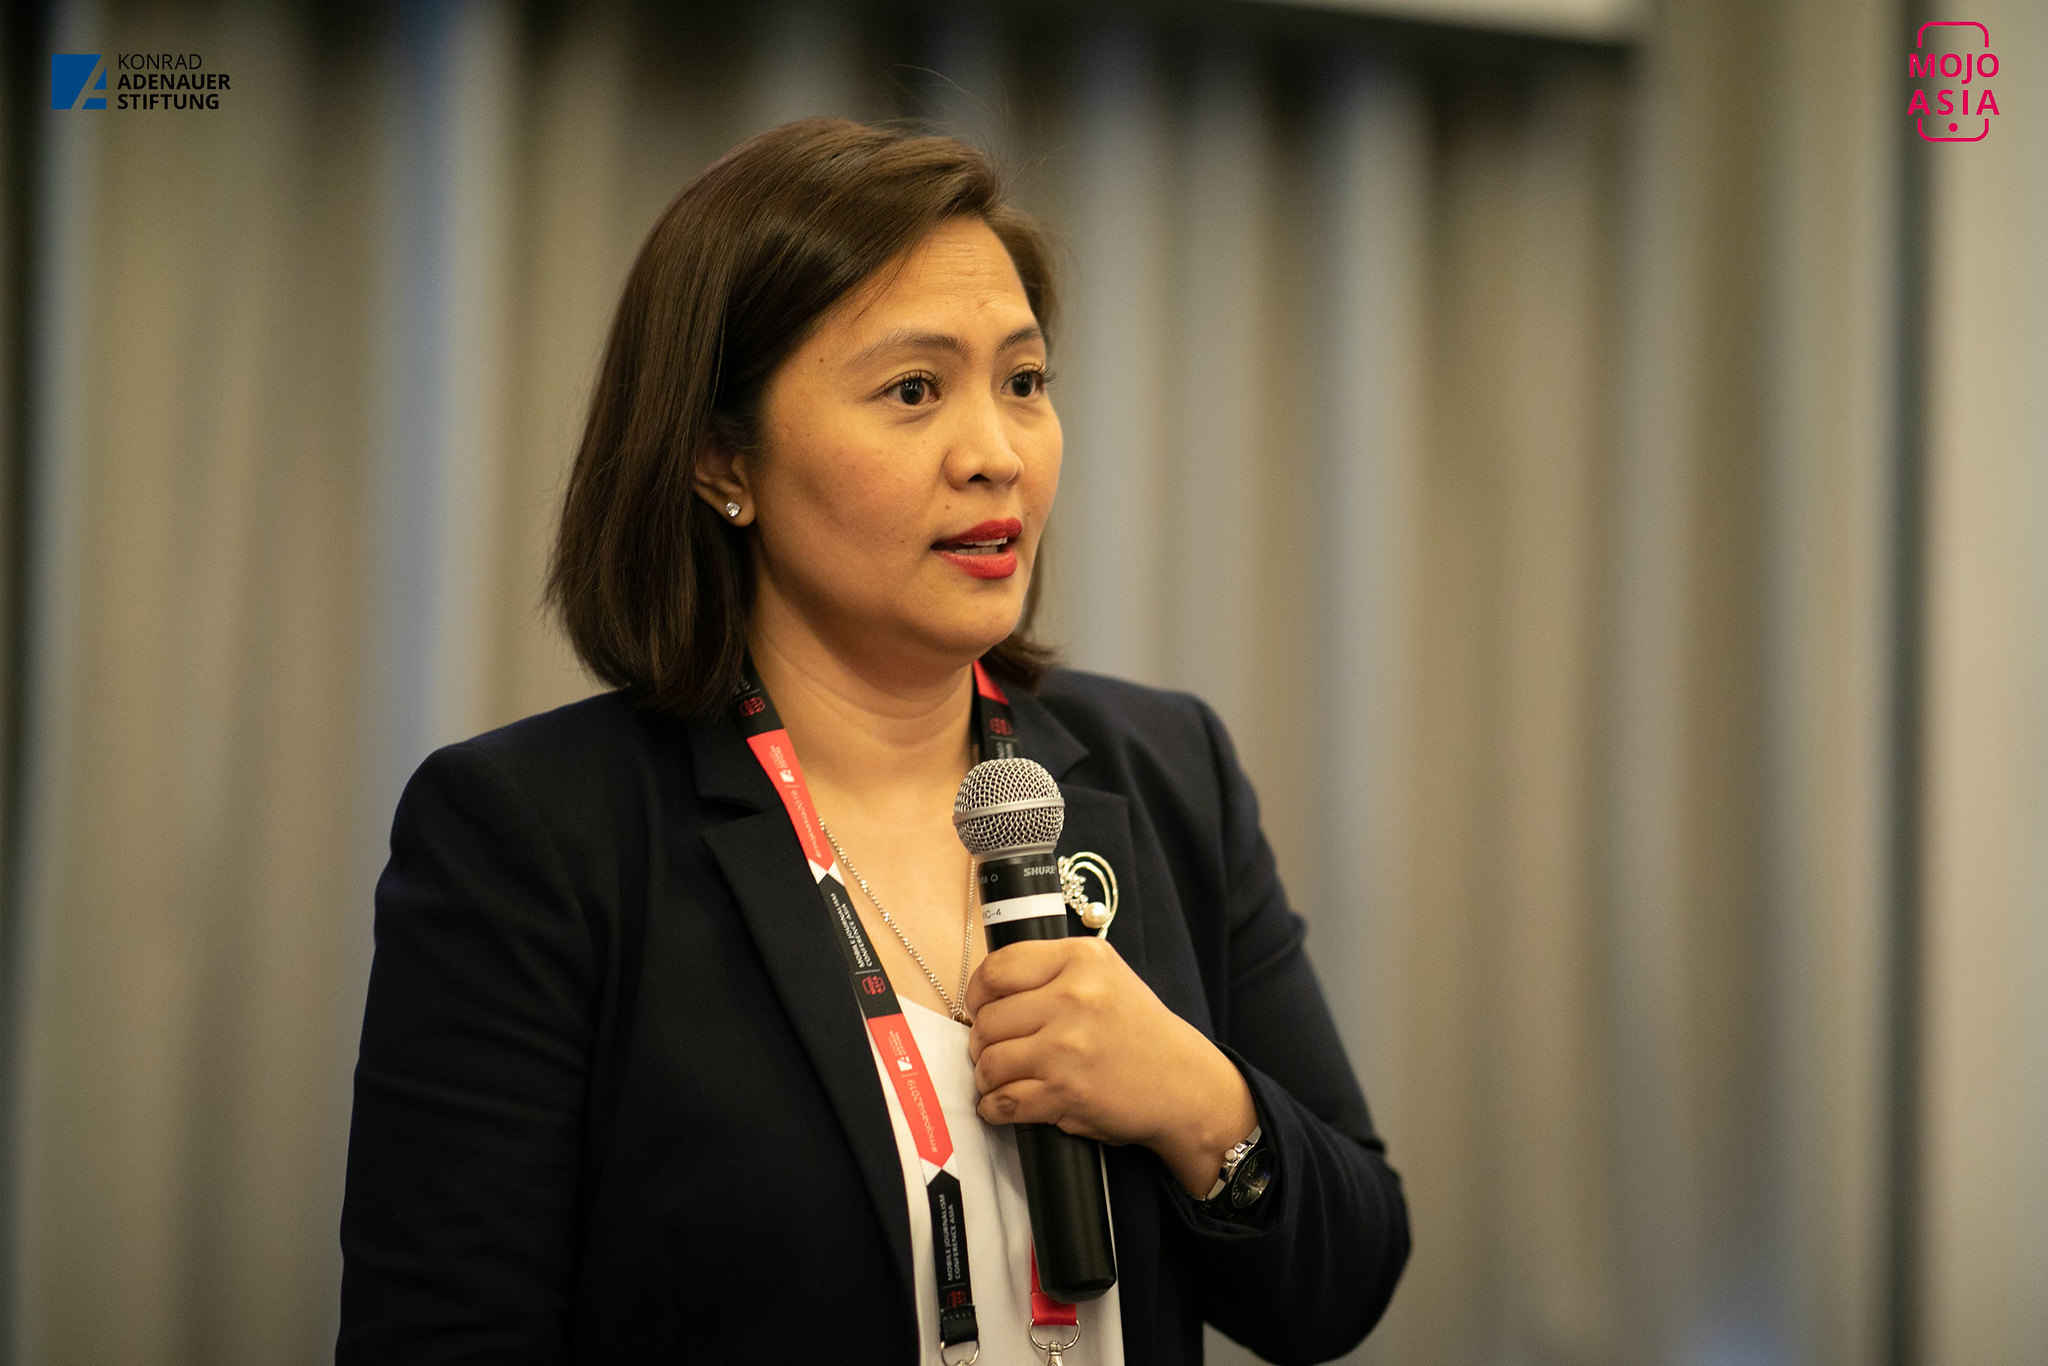 Ana Puod delivering masterclass at the Mobile Journalism Conference in Asia